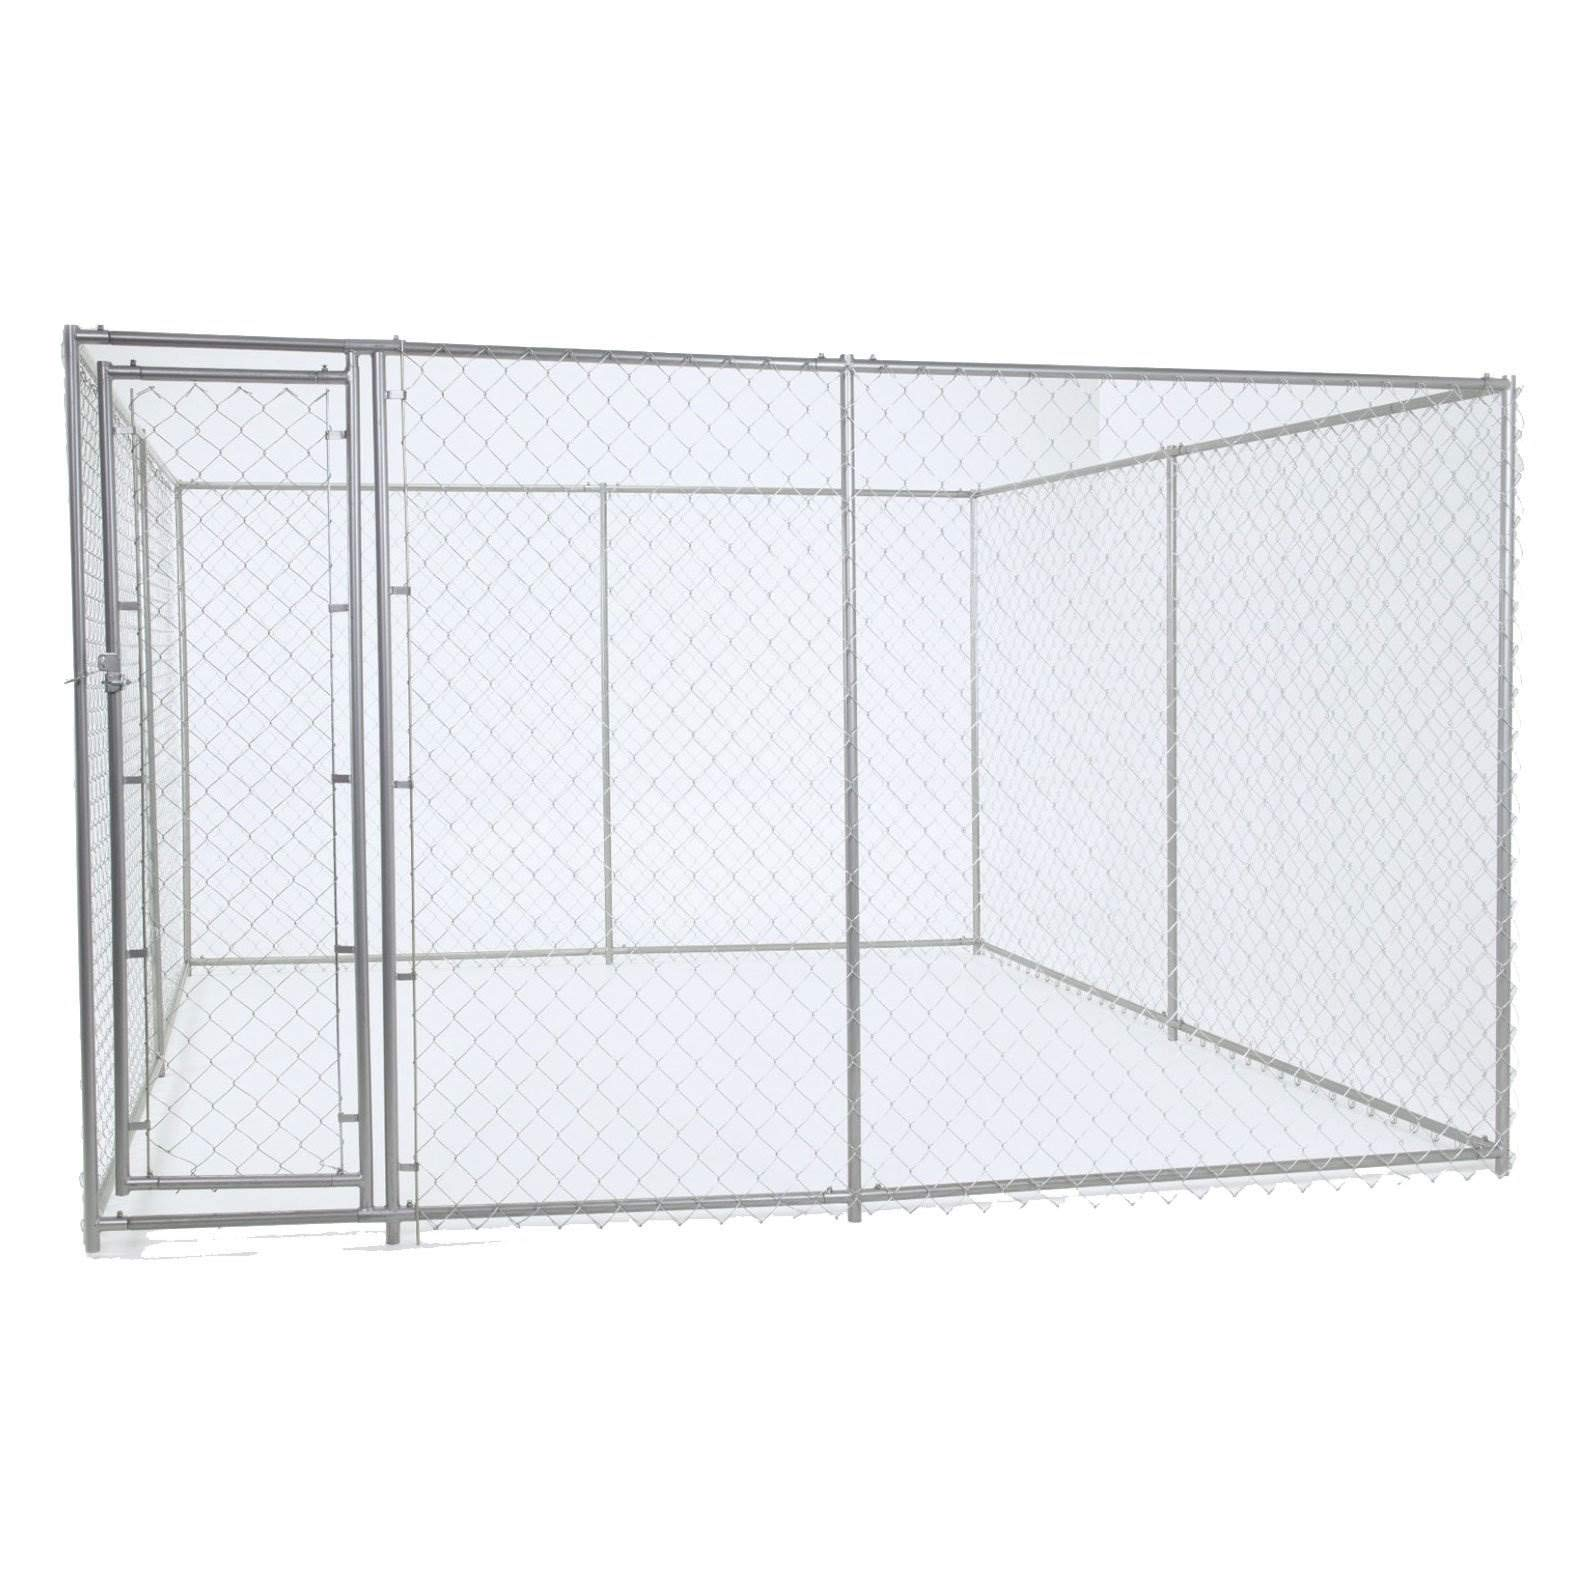 Chain Link Dog Kennel - Lucky Dog Outdoor Heavy Duty Pet Kennel - This Pet Cage System is Perfect For Containing Larger Dogs and Small Animals. Galvanized chain link doesn't kink or tangle. Two setup options (5'W x 15'L x 6'H or 10'W x 10'L x 6'H) by Lucky Dog